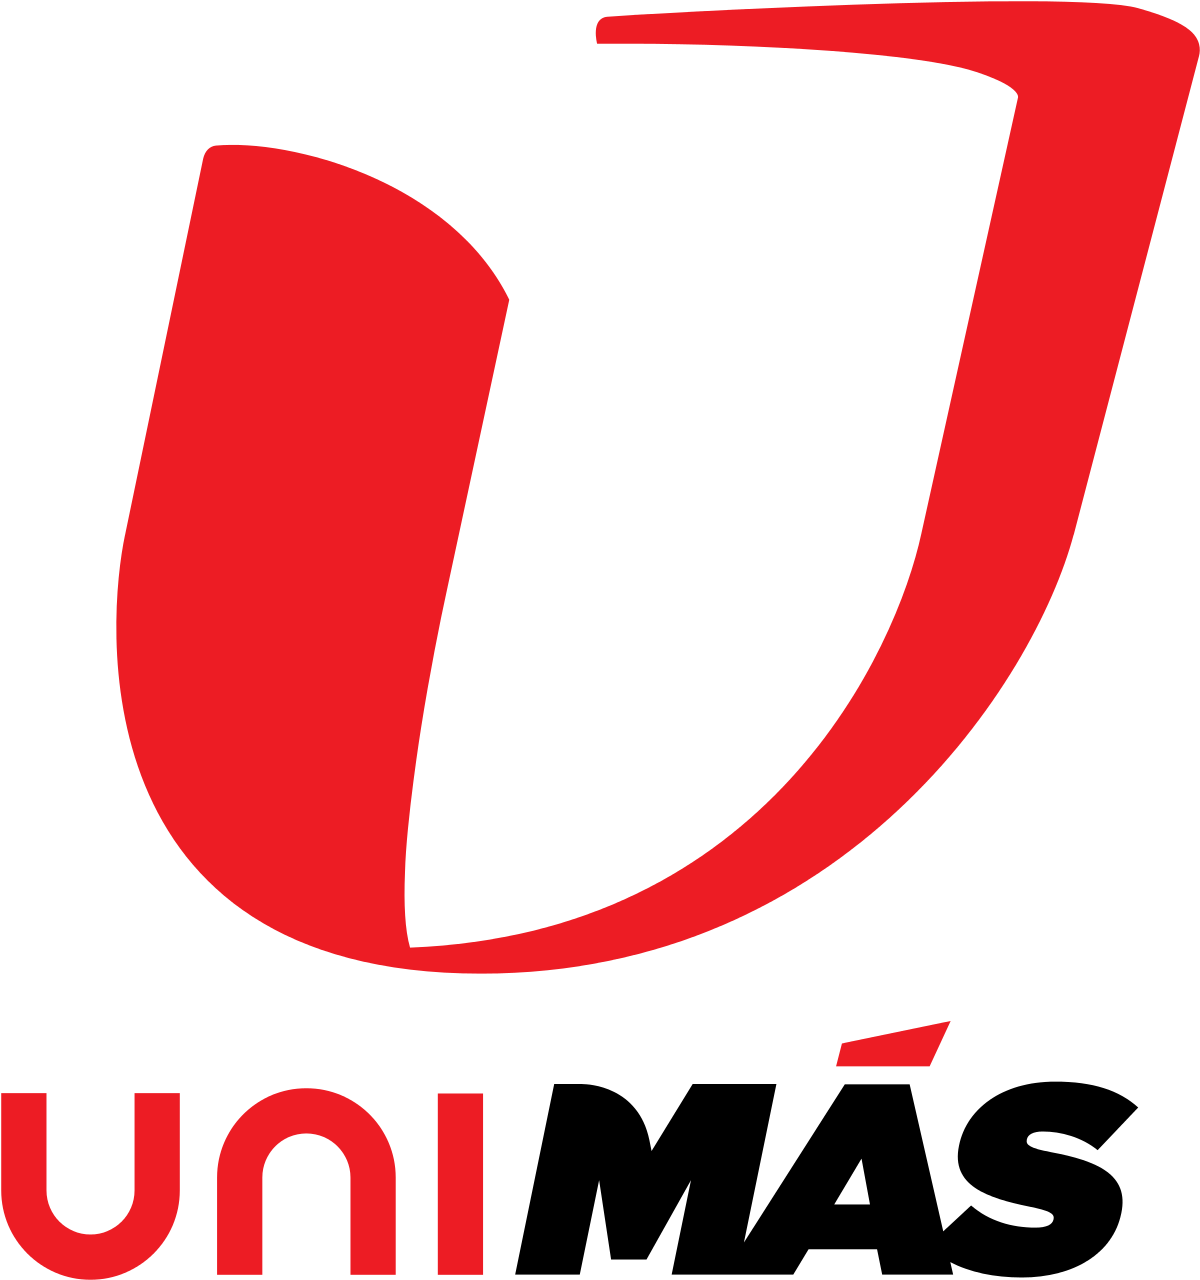 UniMás channel logo